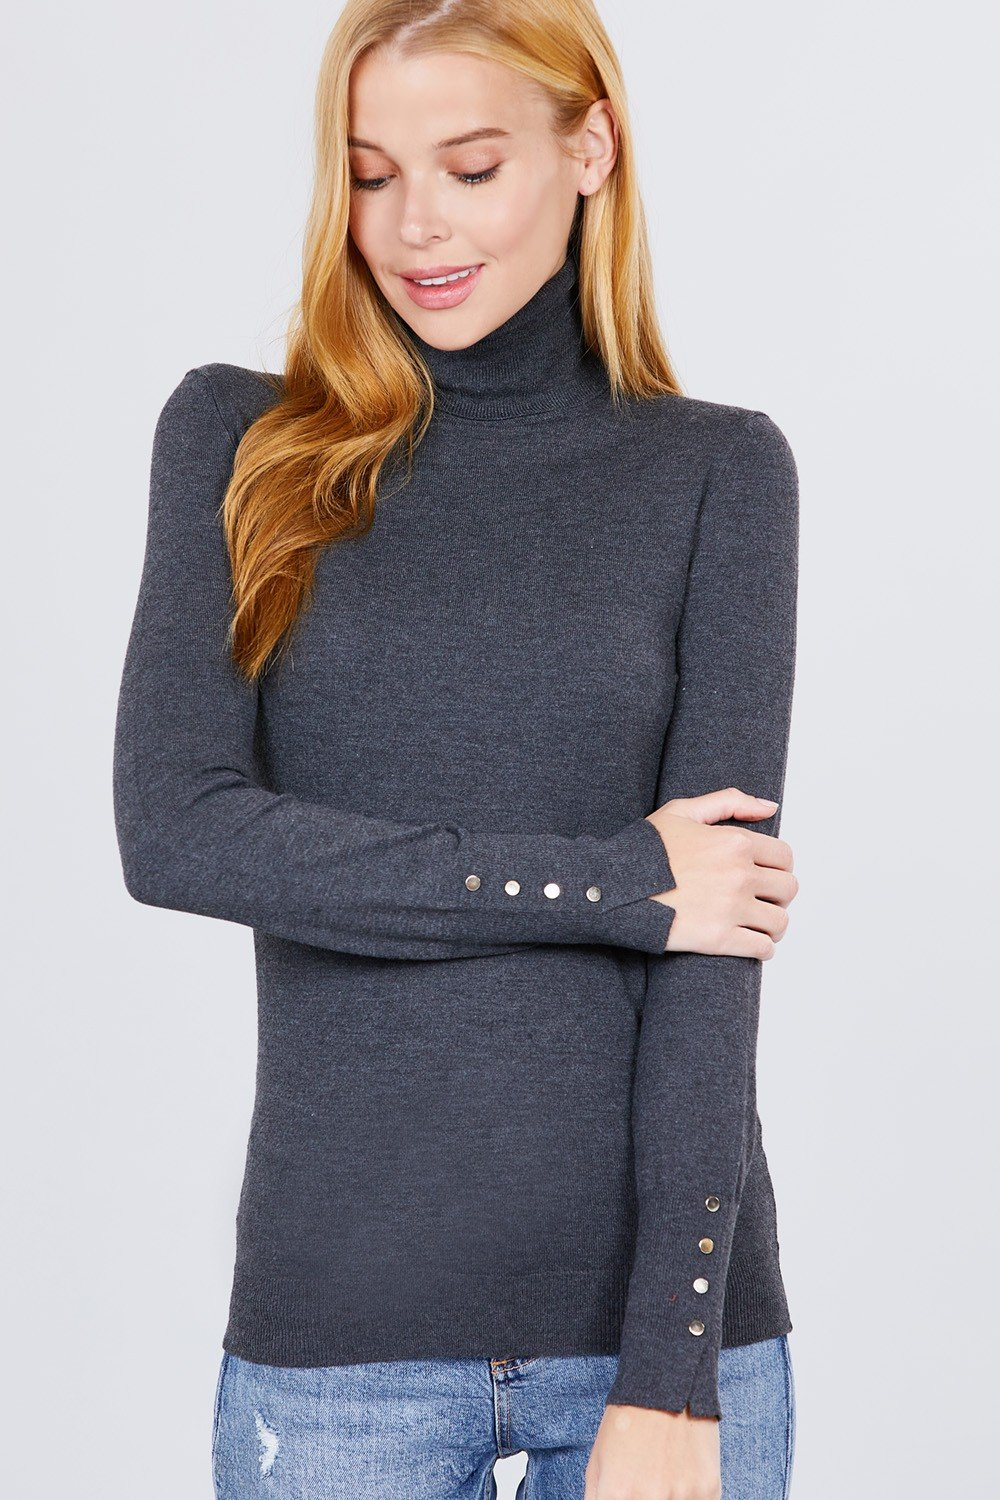 Long Sleeve With Metal Button Detail Turtle Neck Viscose Sweater - Absolute Fashion 2020